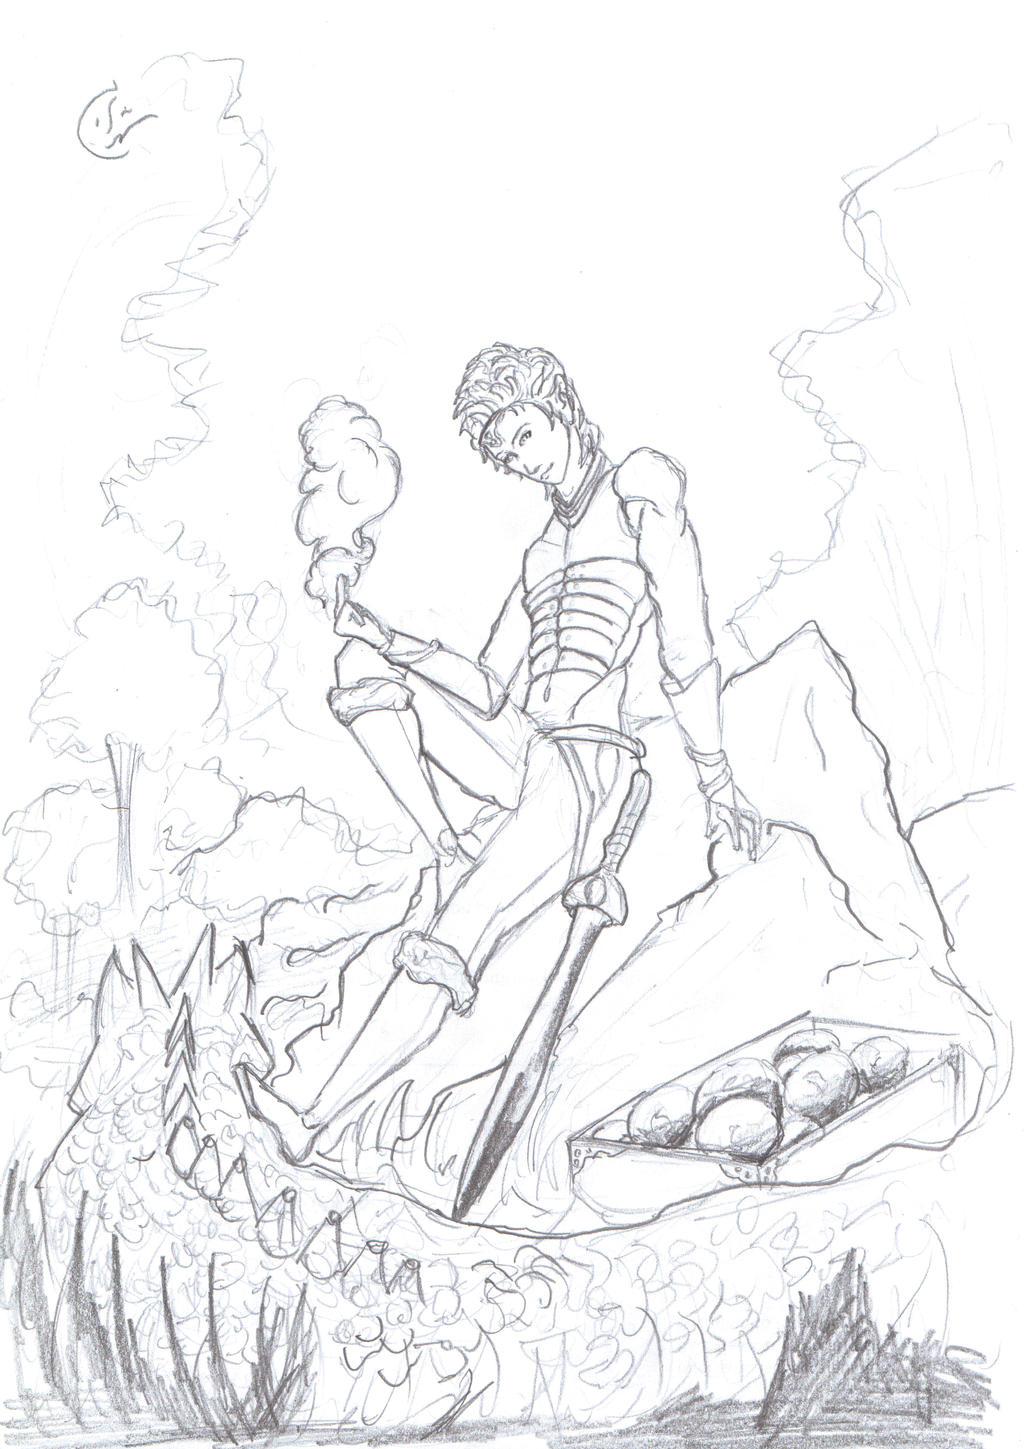 Sketches done in school - Eragon the Dragon rider by IRCSS